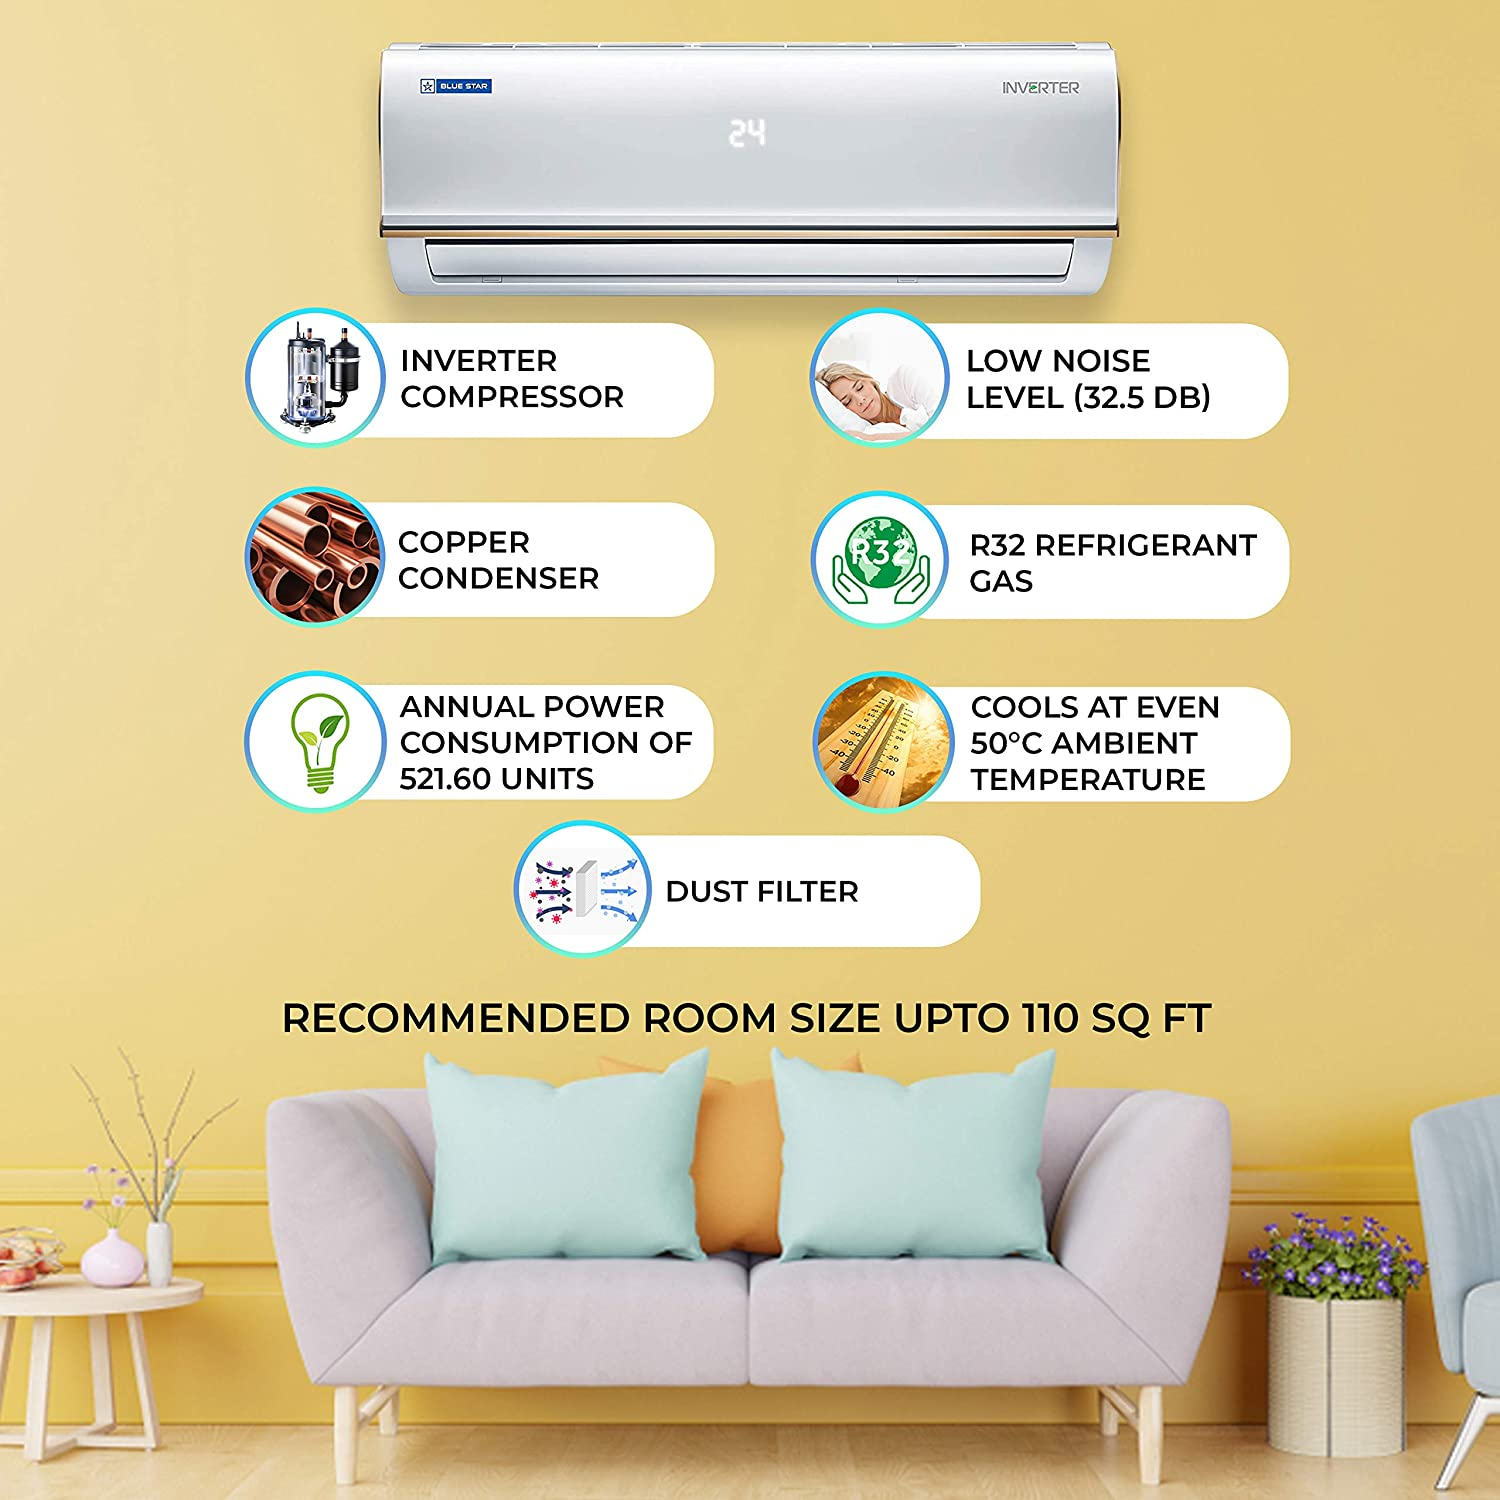 Best Air Conditioner under Rs 25000 in India